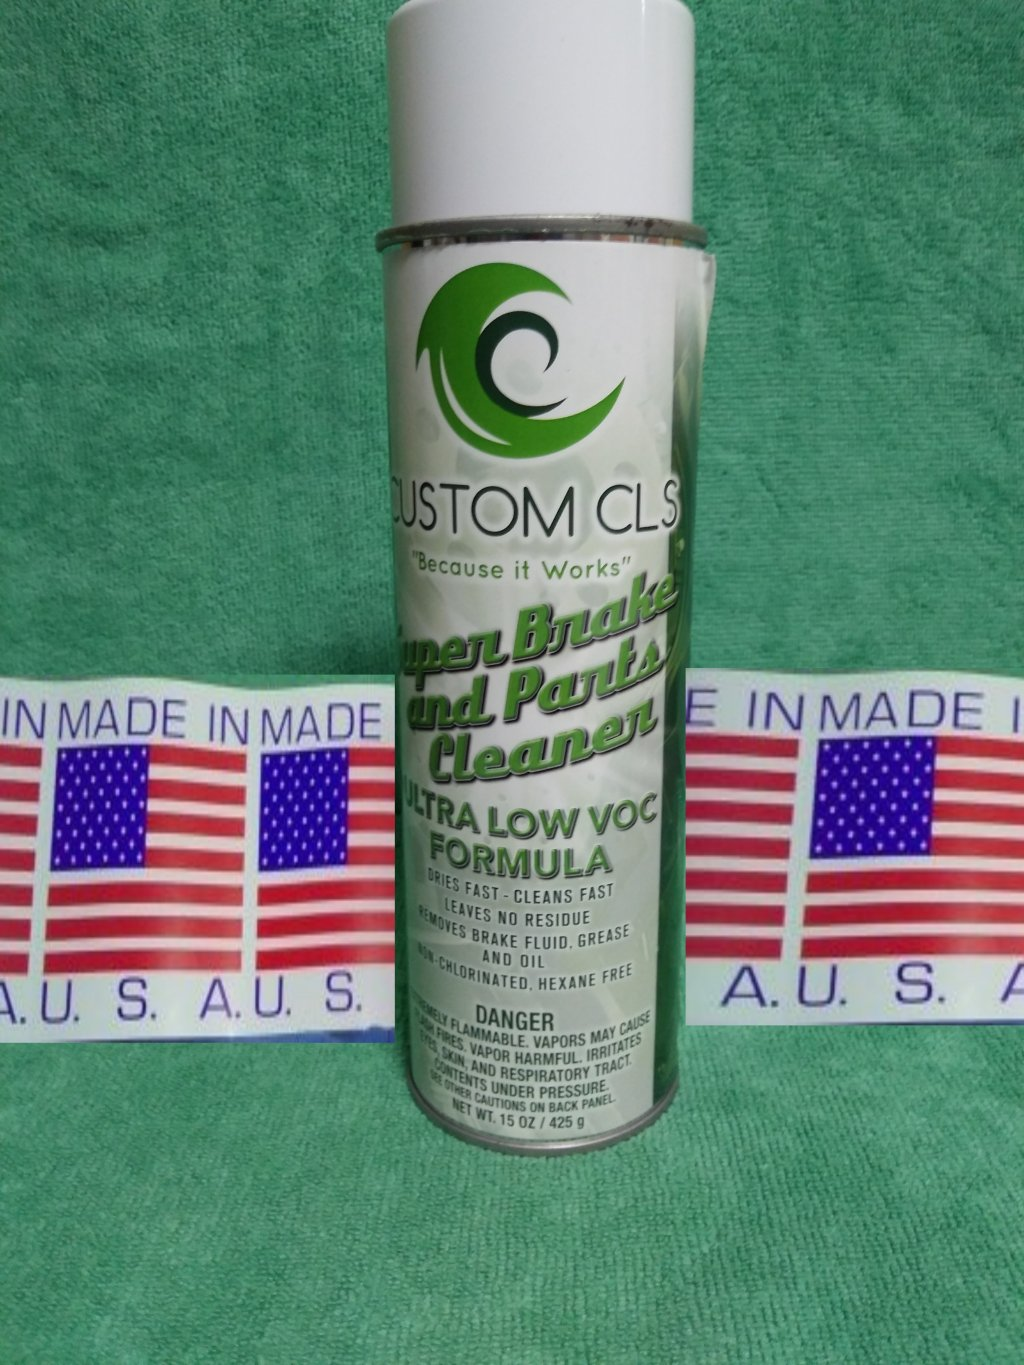 Industrial Bench Maintenance Custom Cls Aerosol Contact And Circuit Board Cleaner Ultra Low Voc Formula A Residue Free Super Fast Drying Heavy Duty That Removes Brake Fluid Grease Oil Dust Operation Erosion Other